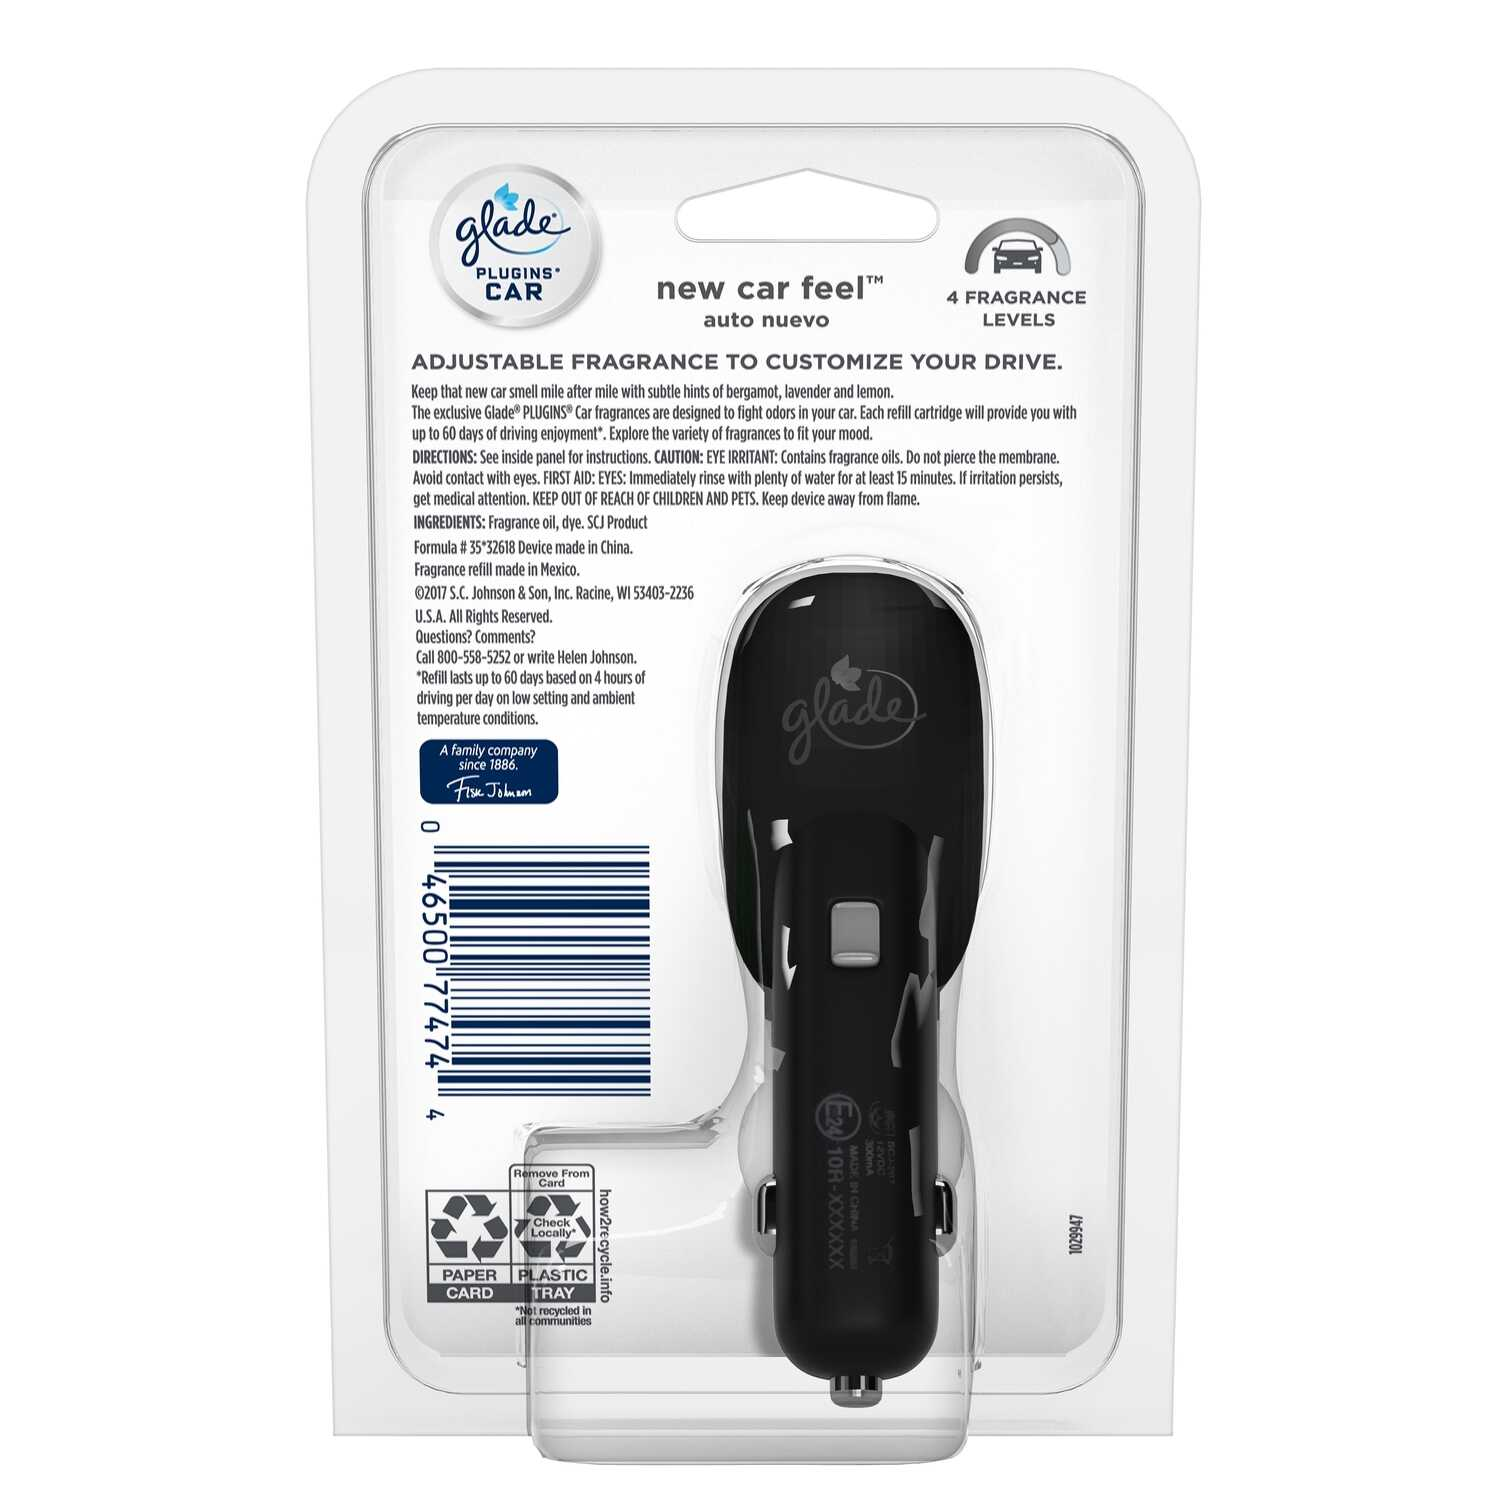 Glade  Plug-Ins  New Car Feel Scent Car Air Freshener  0.11 oz. Solid